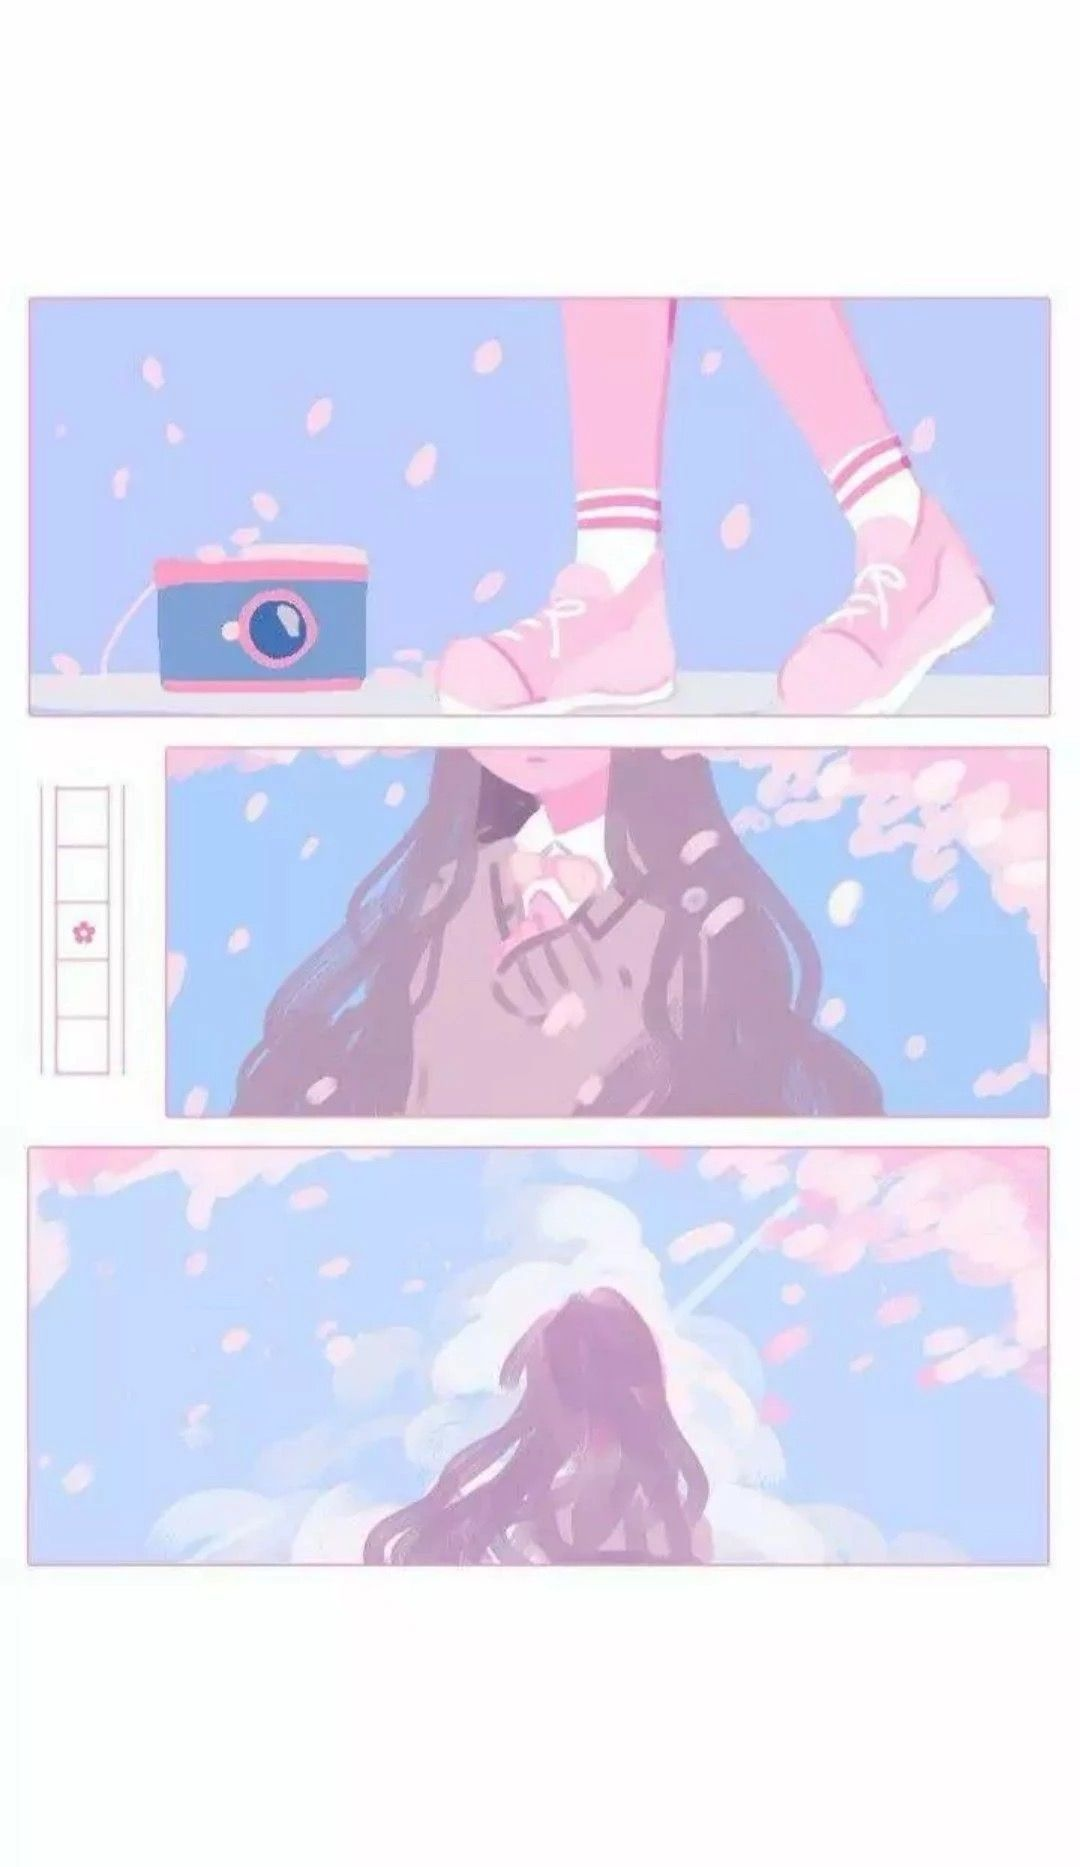 Soft Aesthetic Anime Phone Backgrounds Http Wallpapersalbum Com Soft Aesthetic Anime Phone Backgrounds Aesthetic Anime Anime Wallpaper Cute Pastel Wallpaper